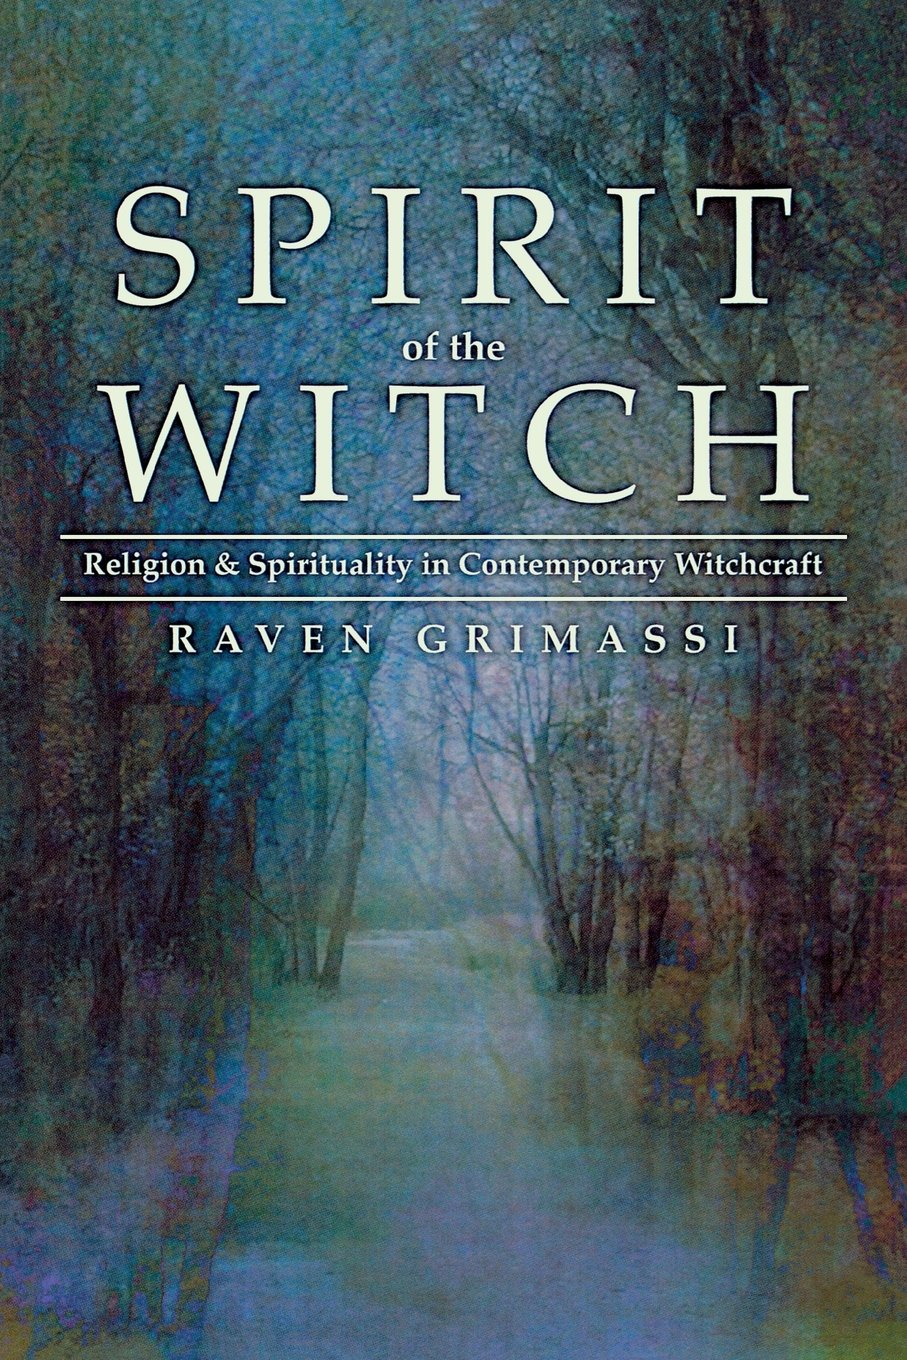 Spirit of the Witch (Raven Grimassi)